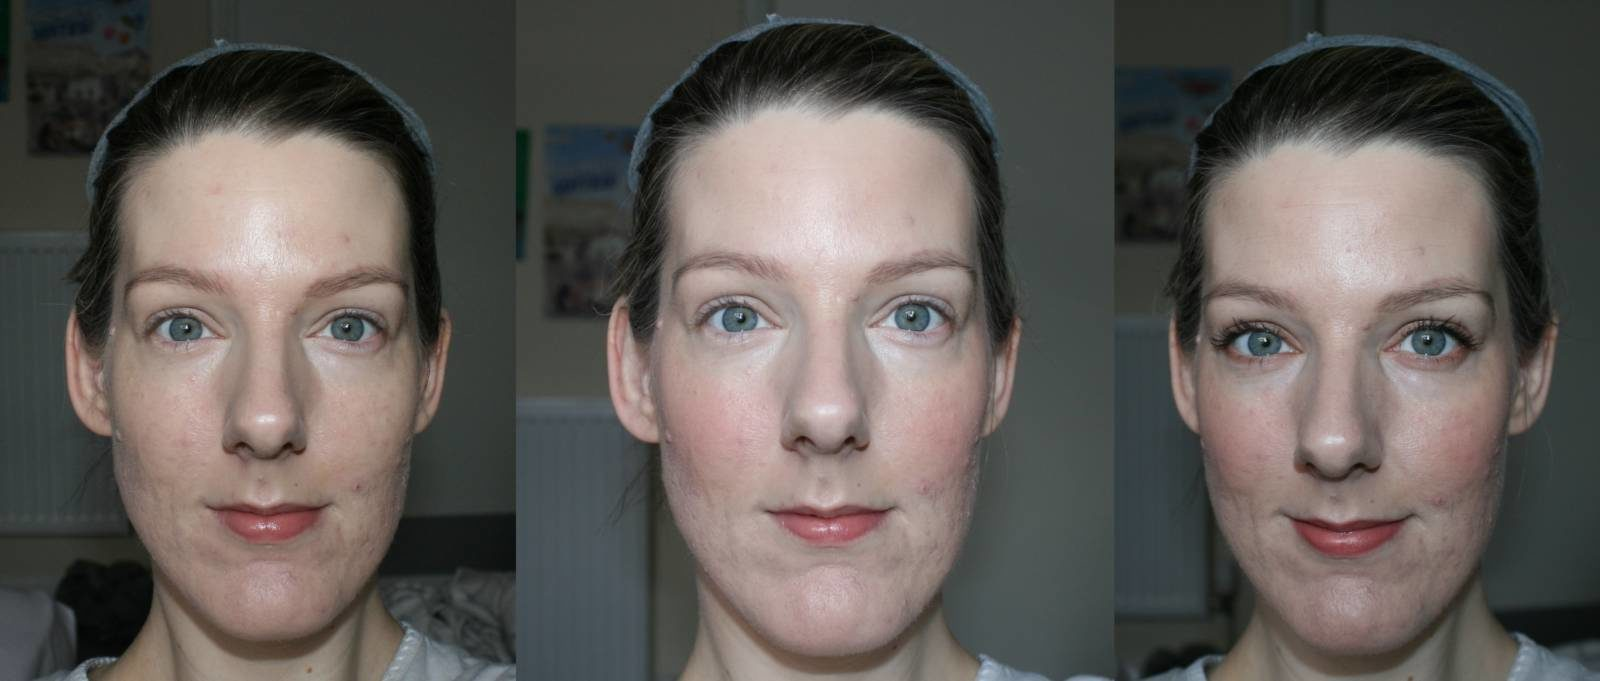 Charlotte Tilbury The Complete Natural, Glowing Look before and after